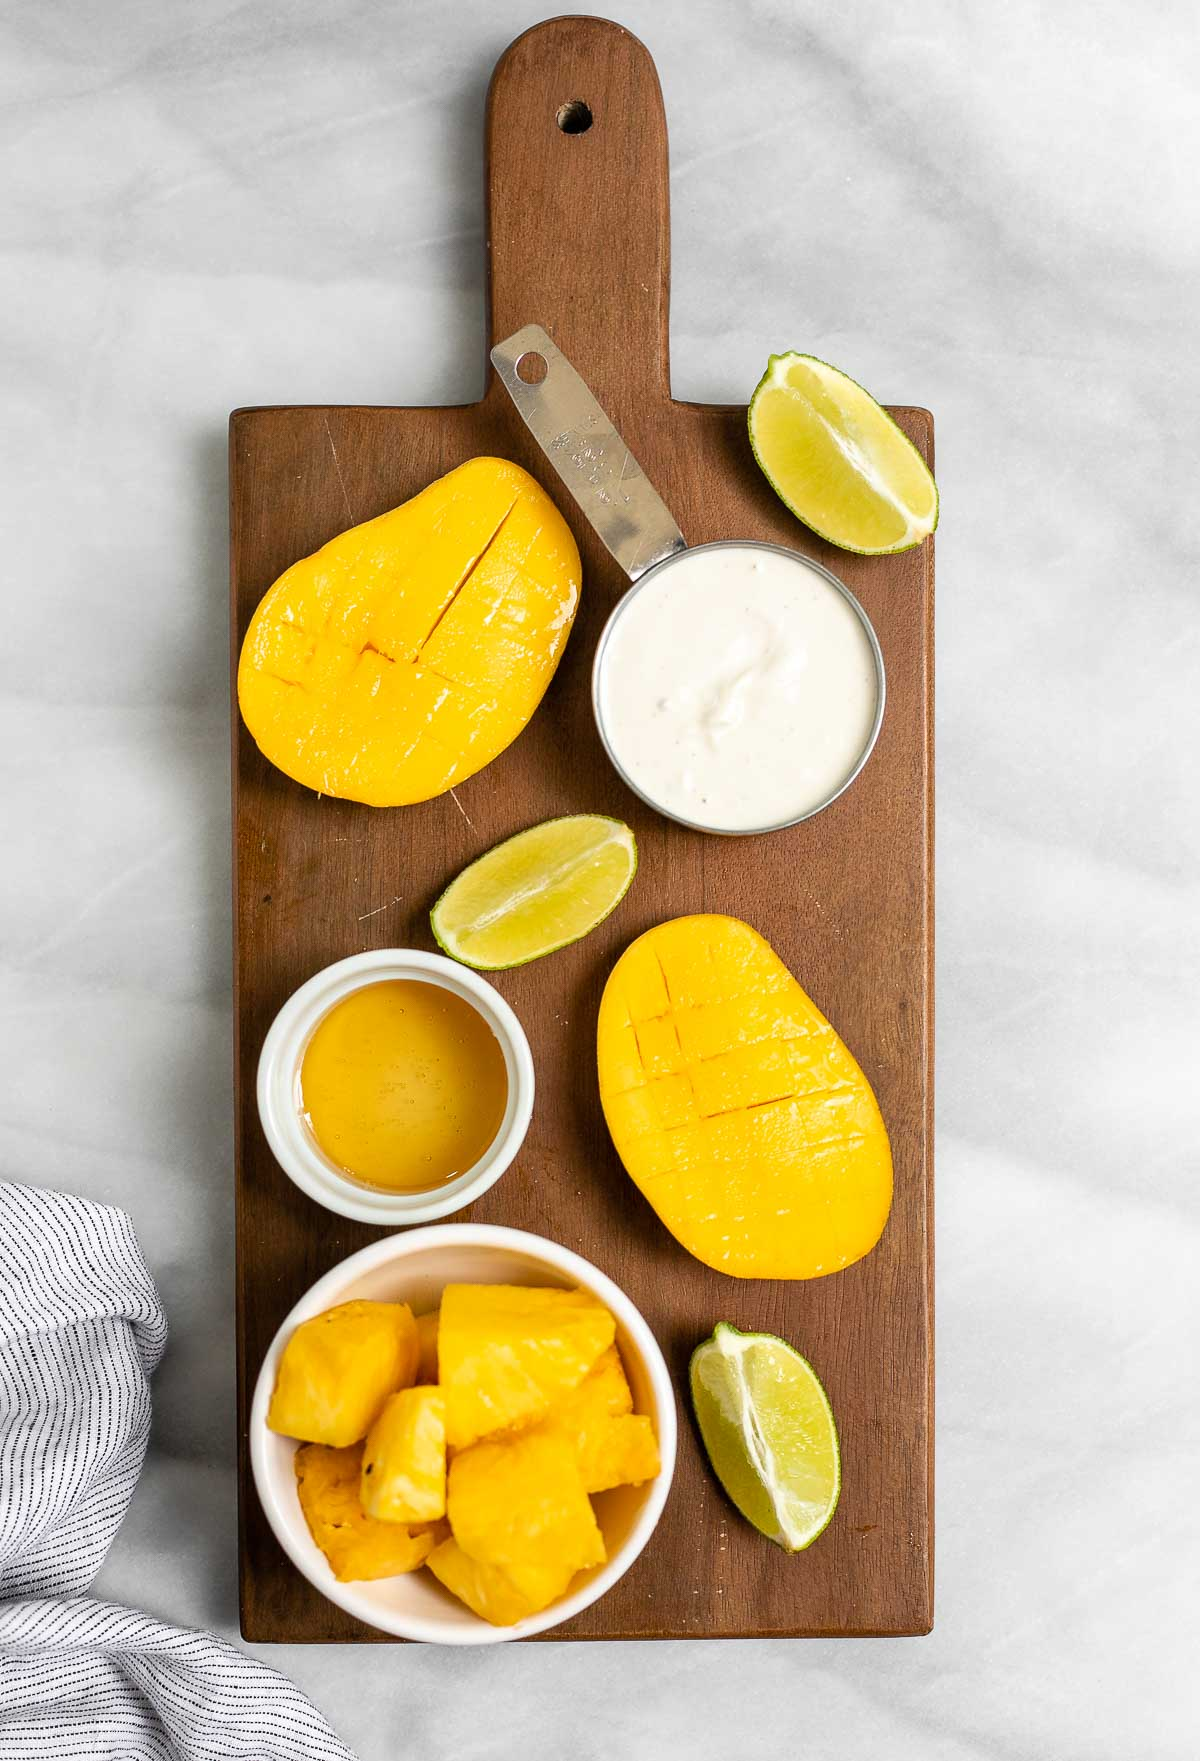 Ingredients for the mango popsicles on a wood board.